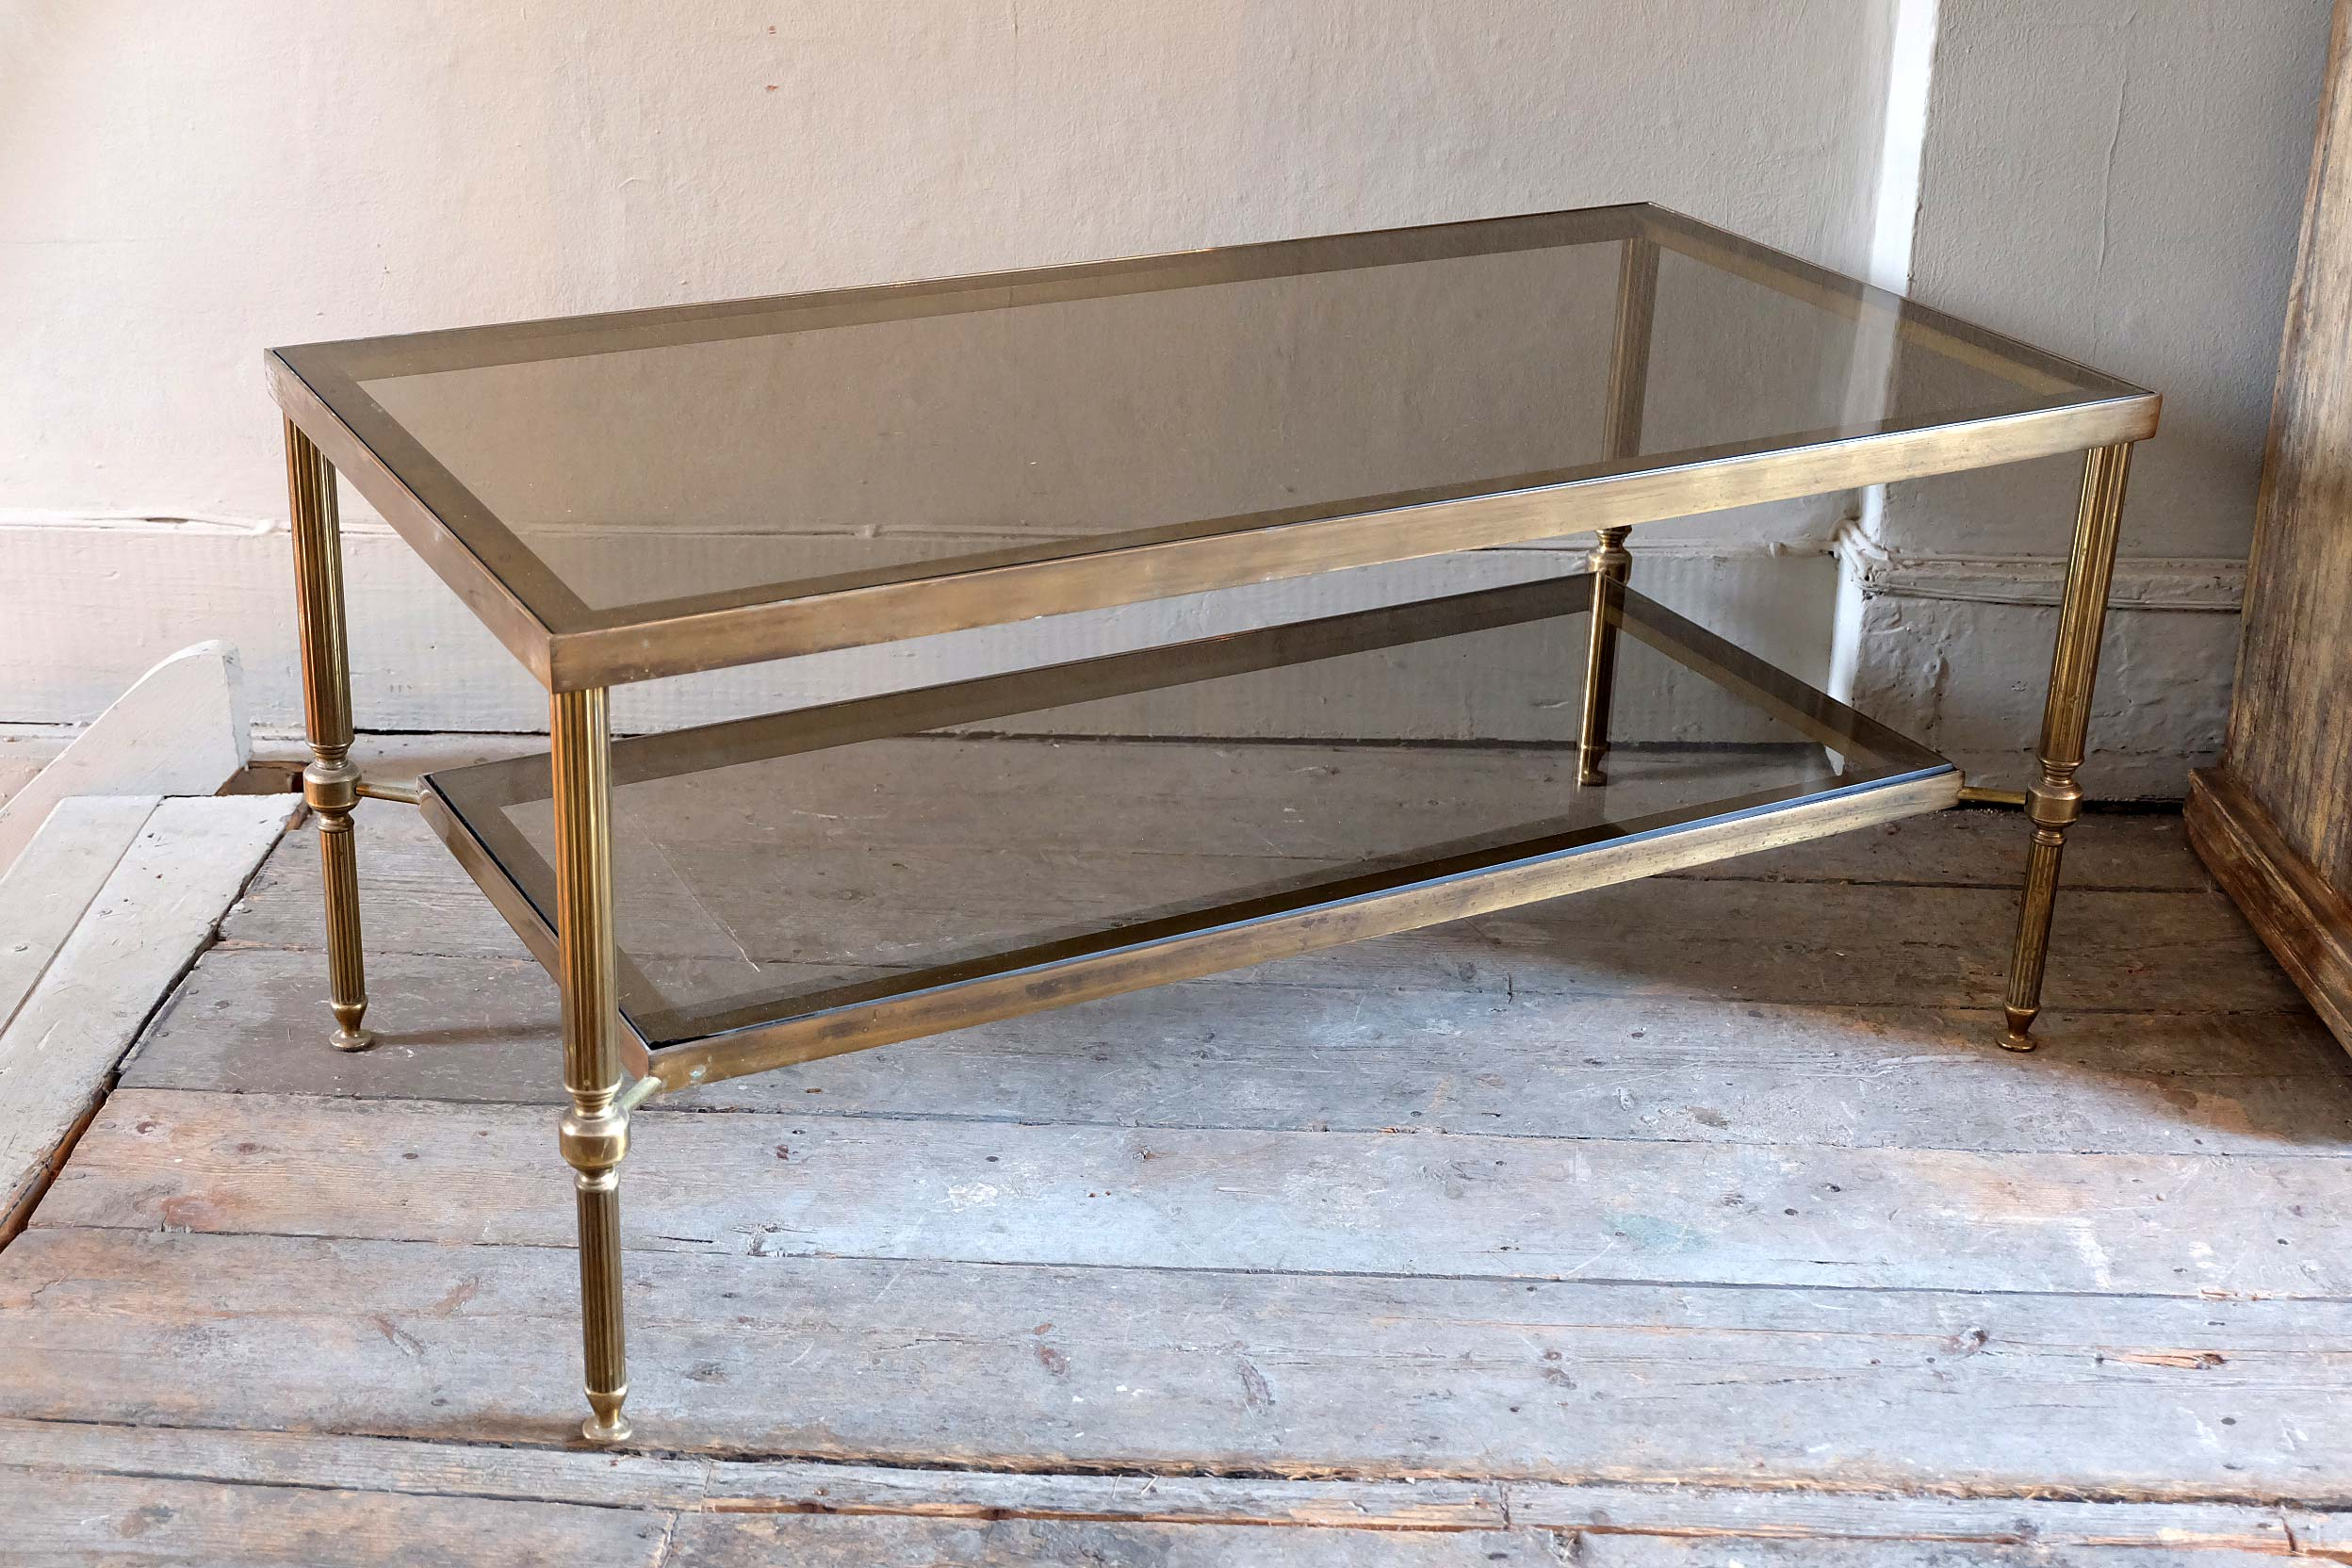 Two-Tier-Glass-Coffee-Table-Best-Professionally-Designed-Good-luck-to-all-those-who-try-Console-Tables-All-Narcissist-and-Nemesis-Family (Image 2 of 10)